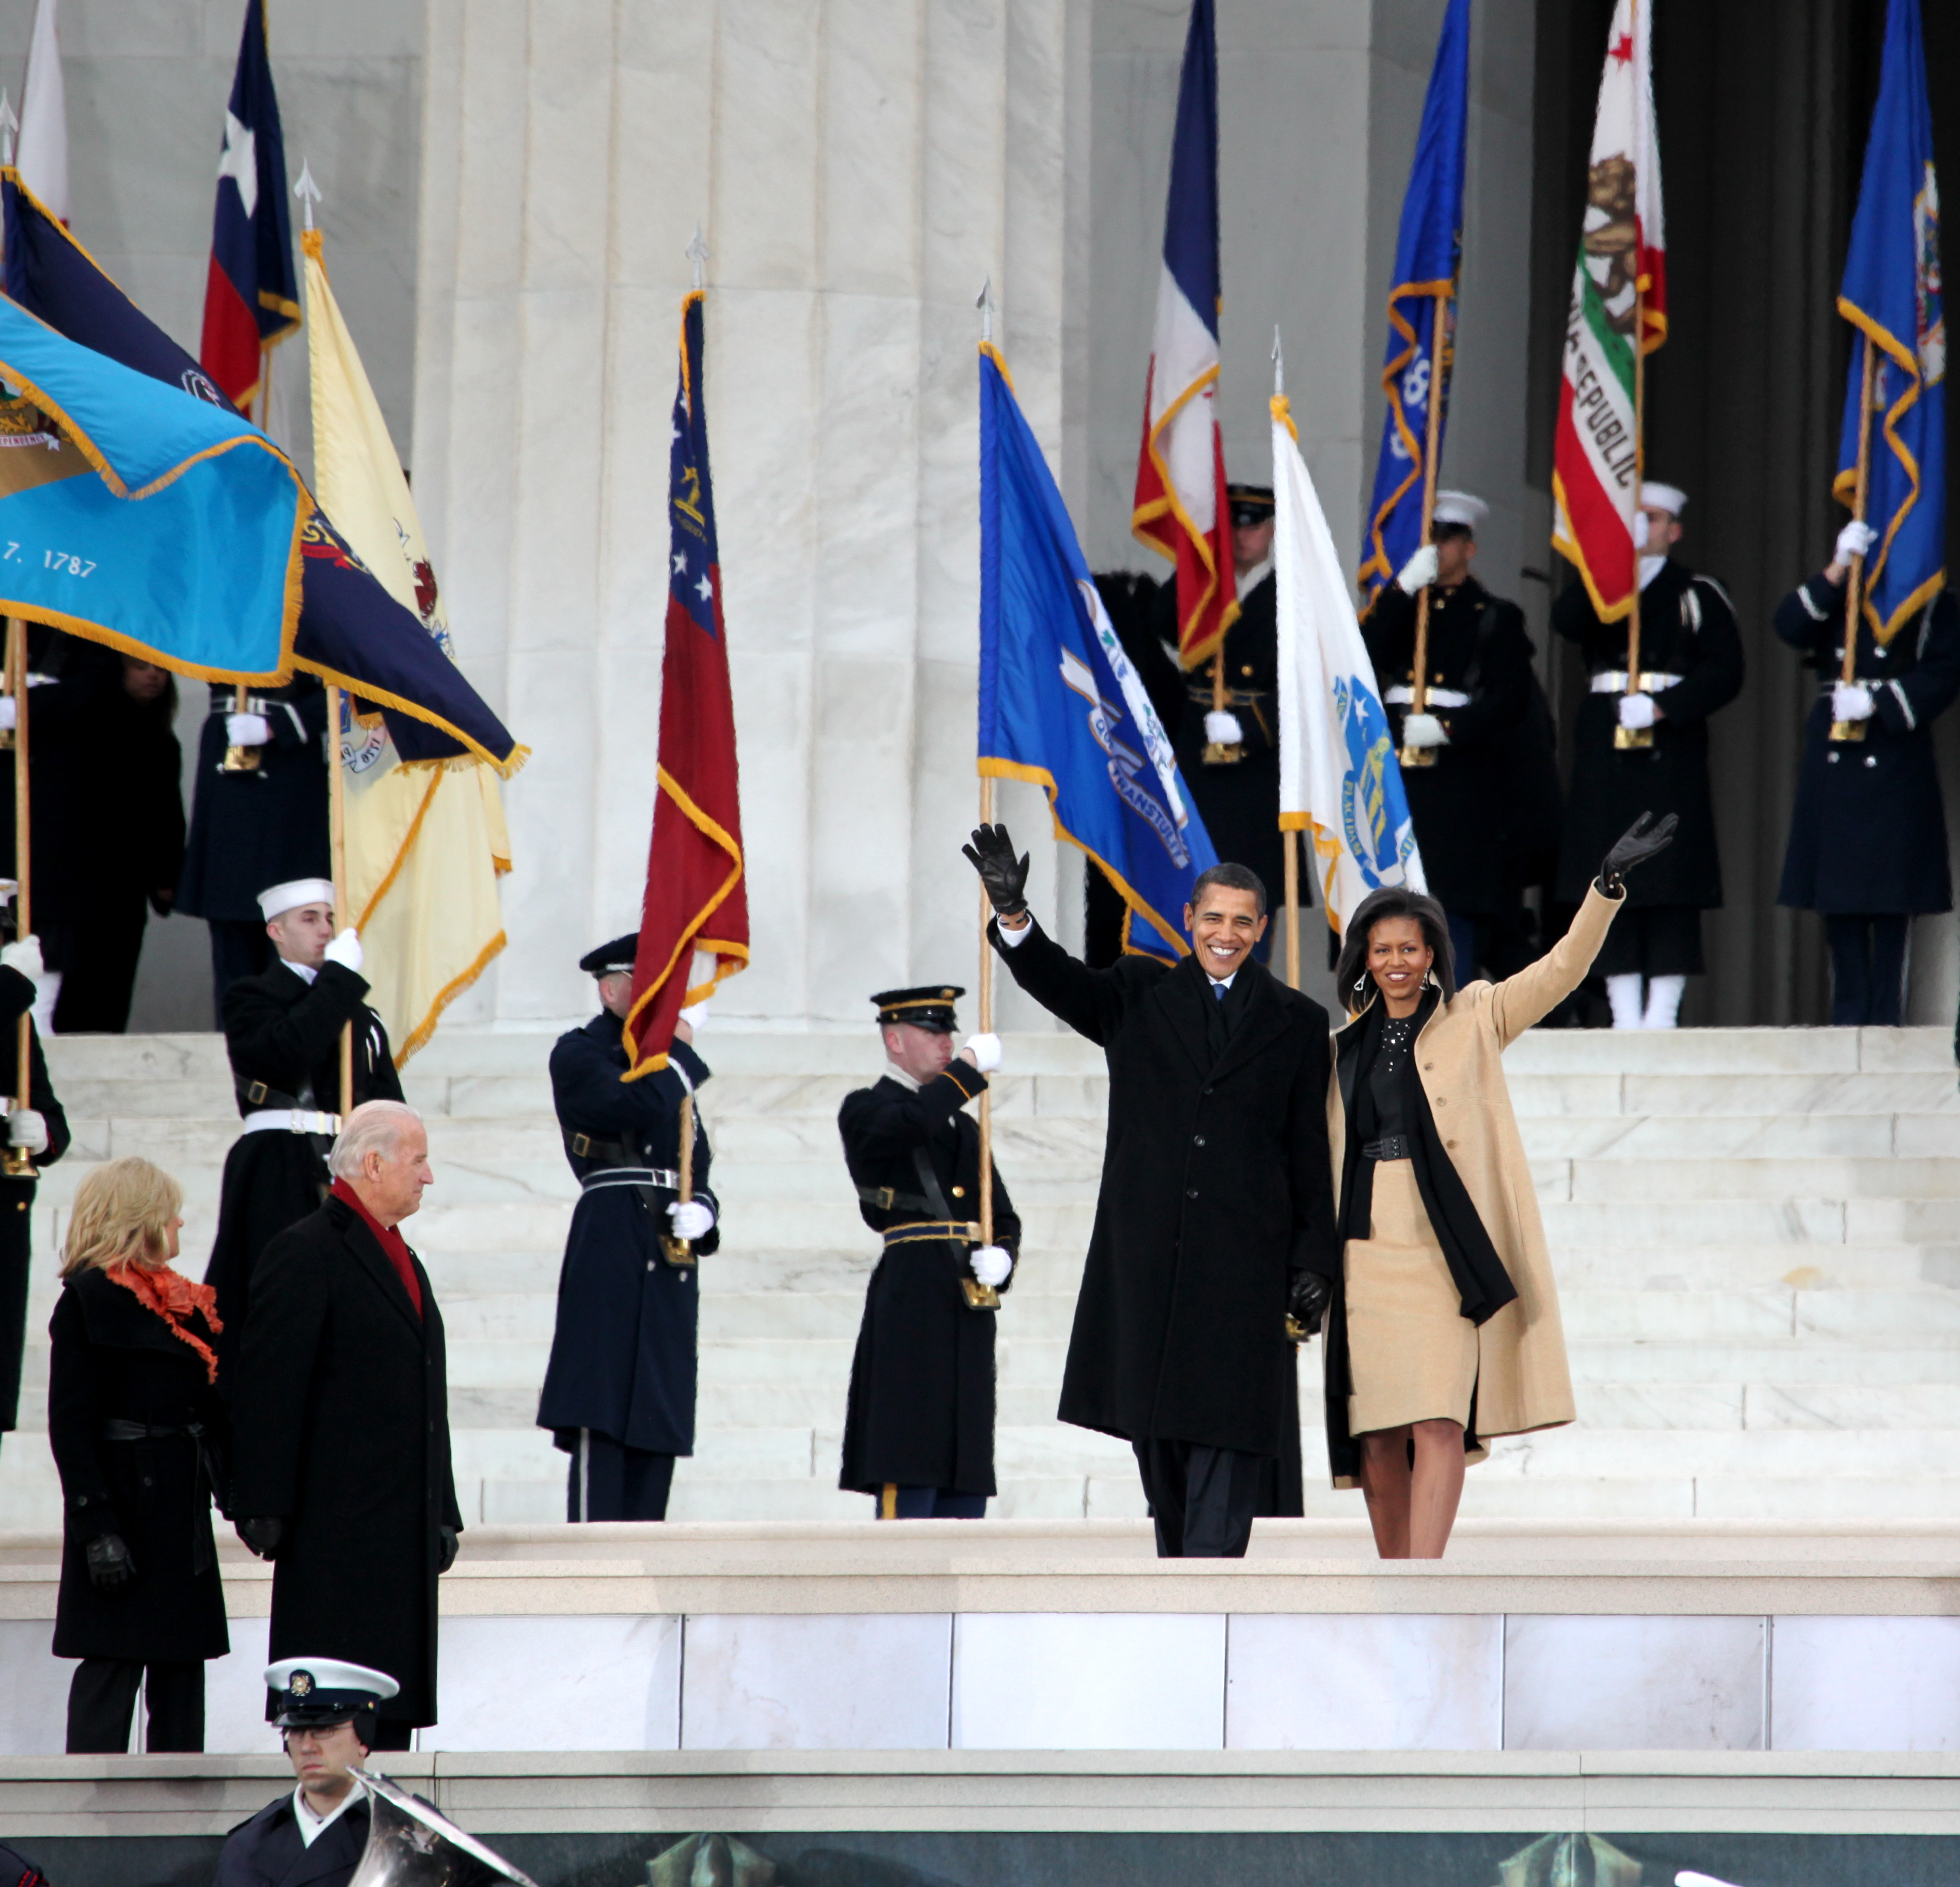 The Obamas wave as they walk past military flagbearers in the background while a couple stands in the foreground.